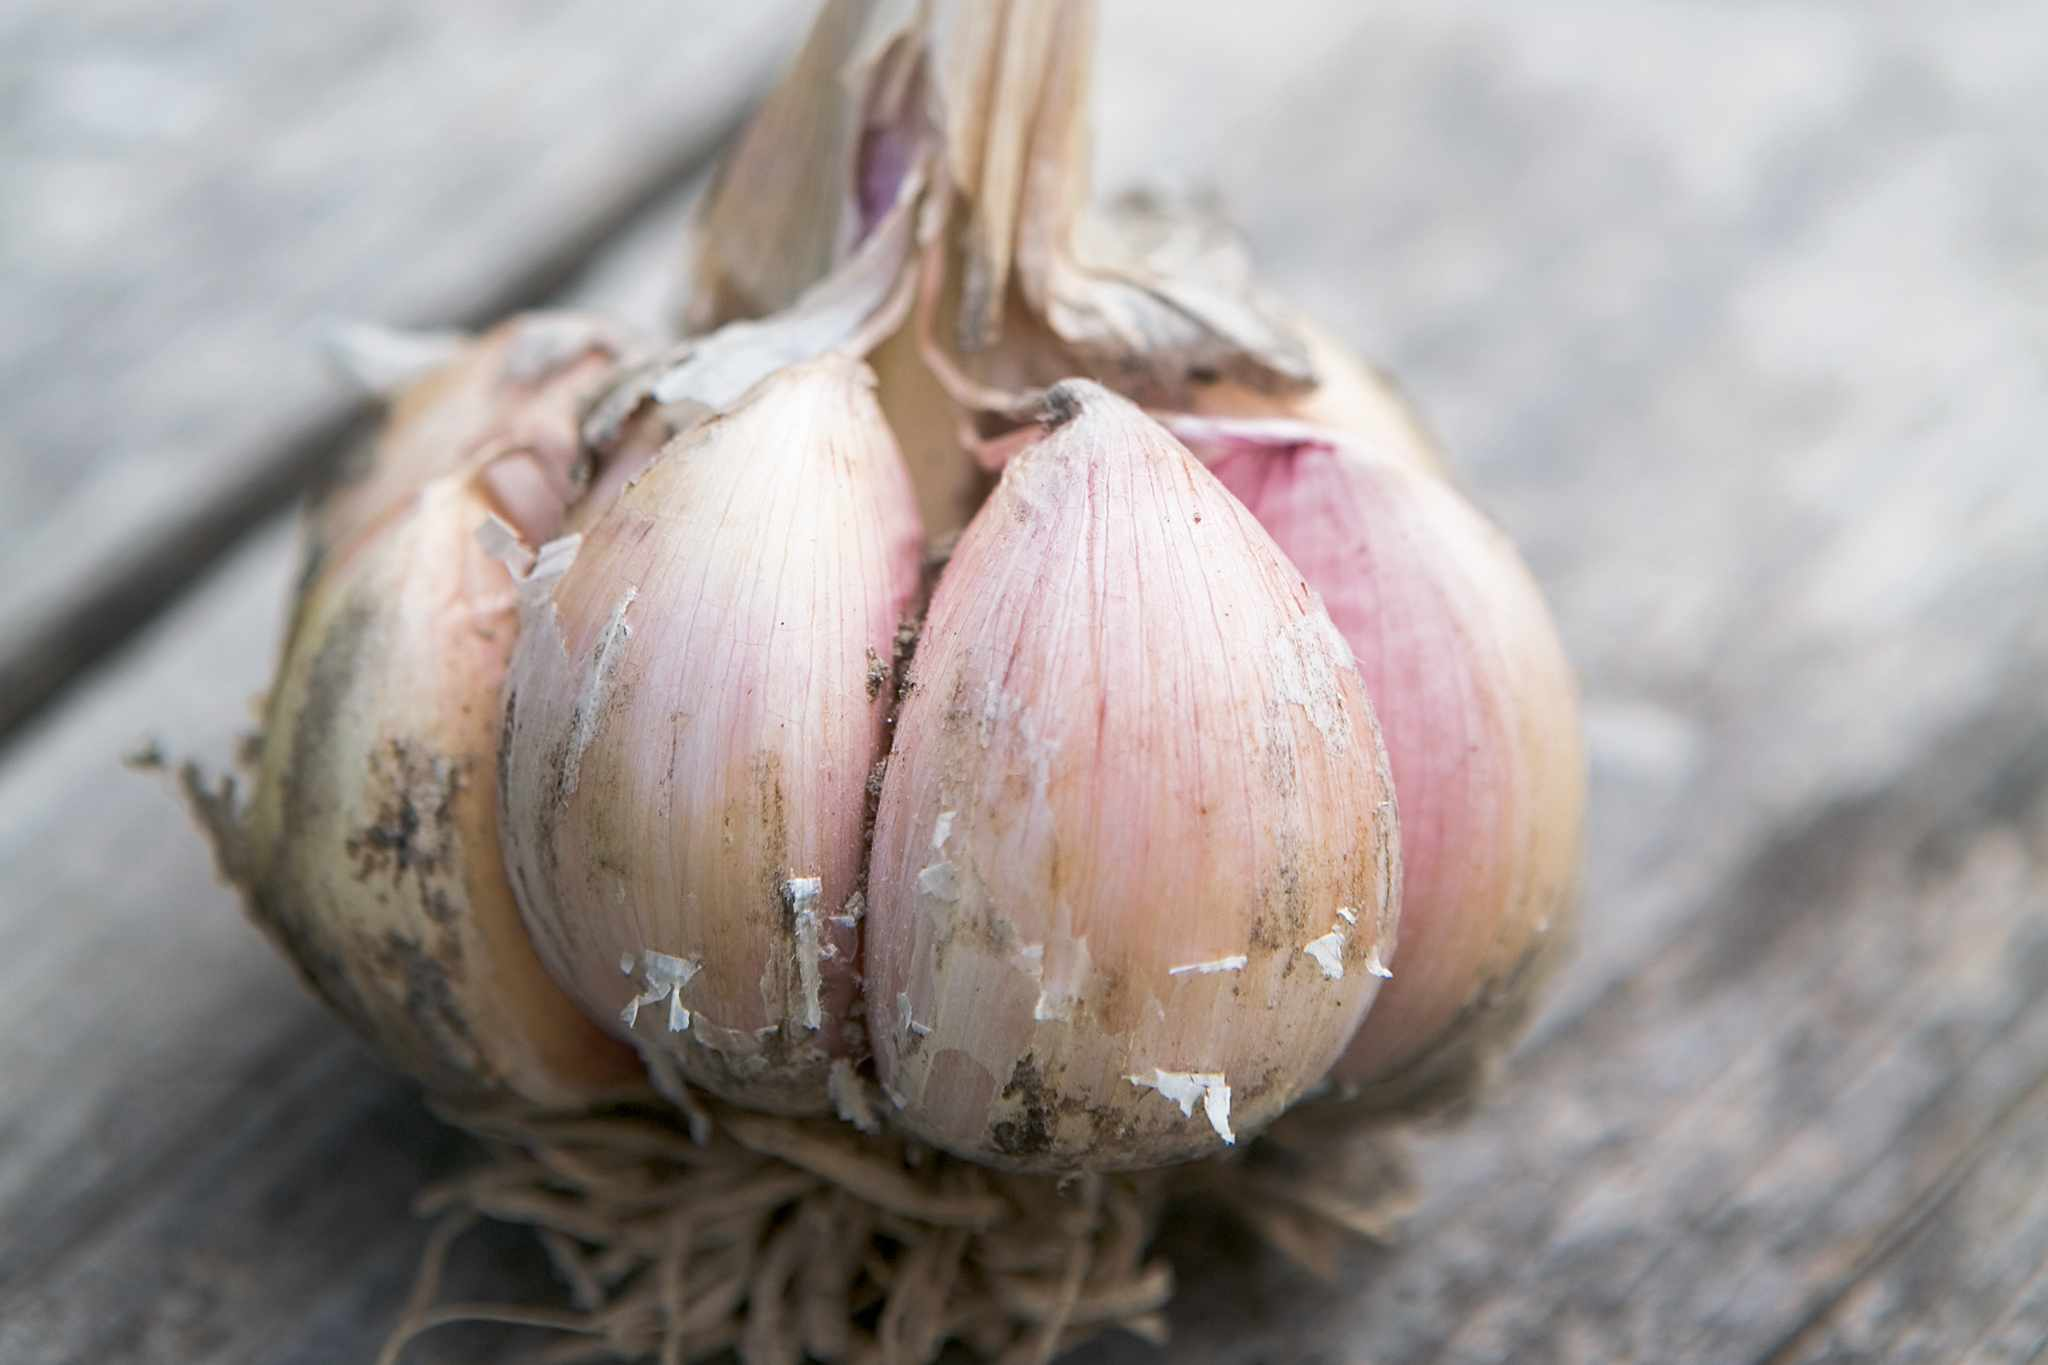 A bulb of garlic